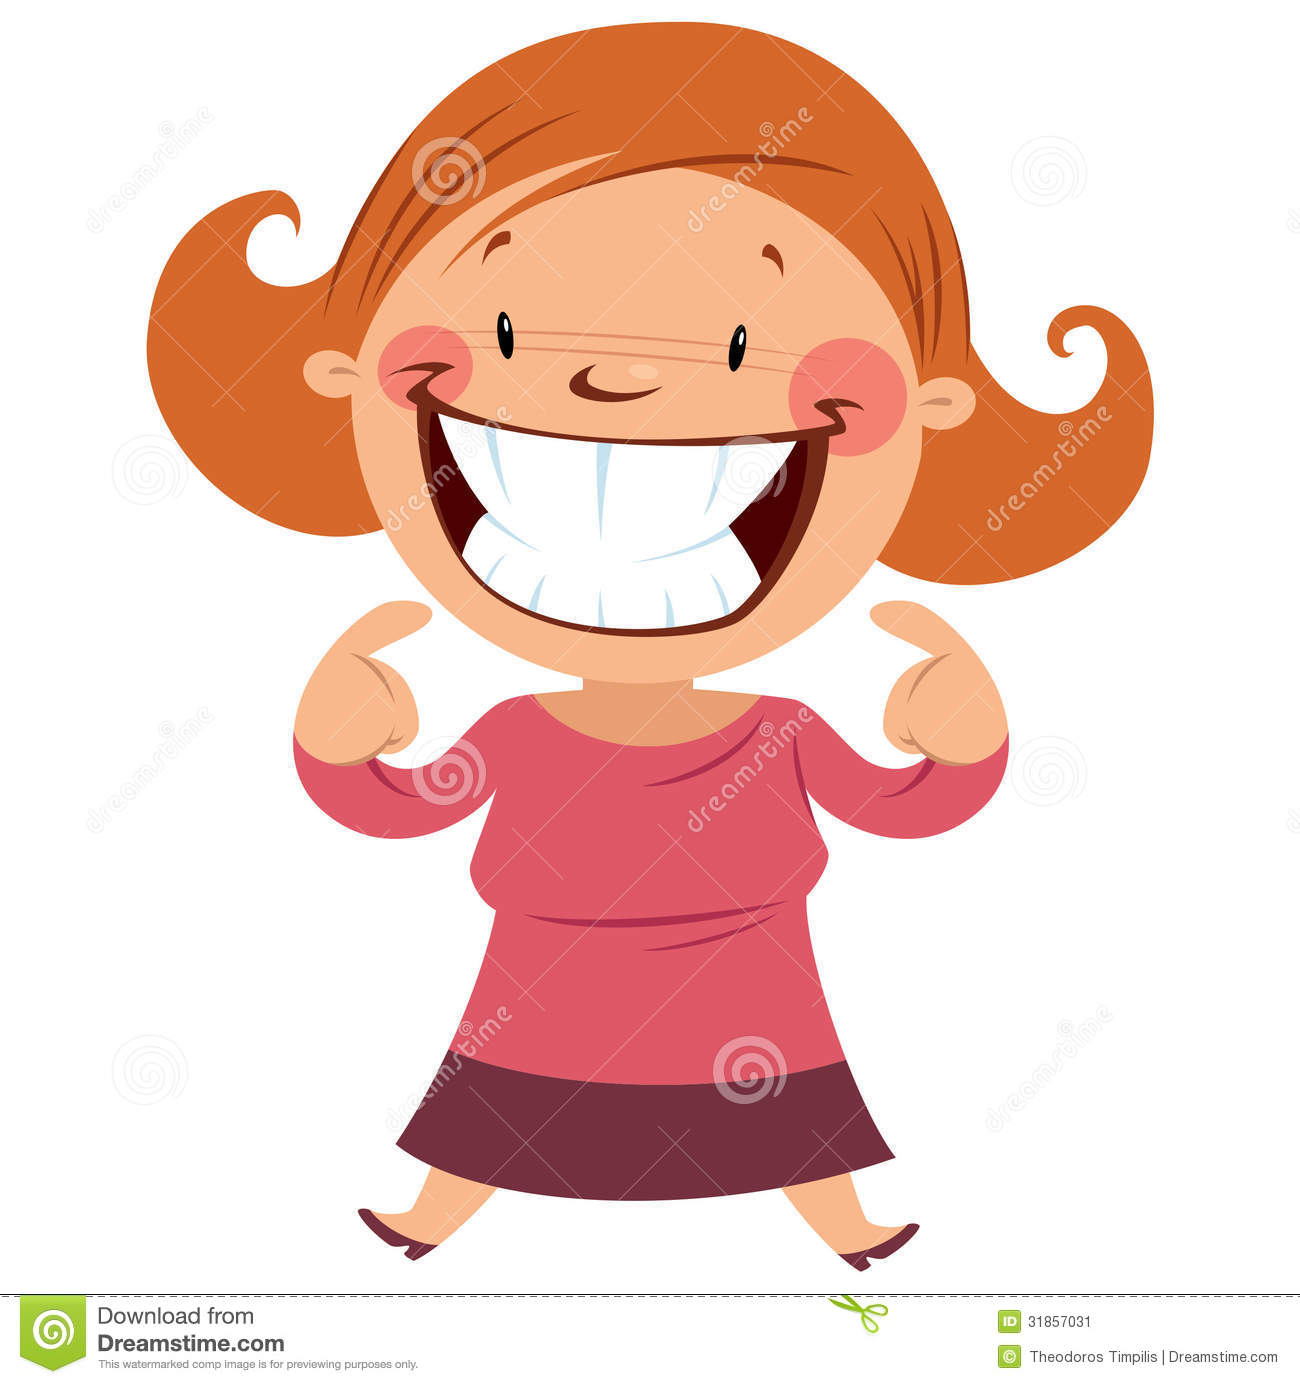 Happy Woman Smiling Showing Her Smile And Teeth Stock Image - Image ...